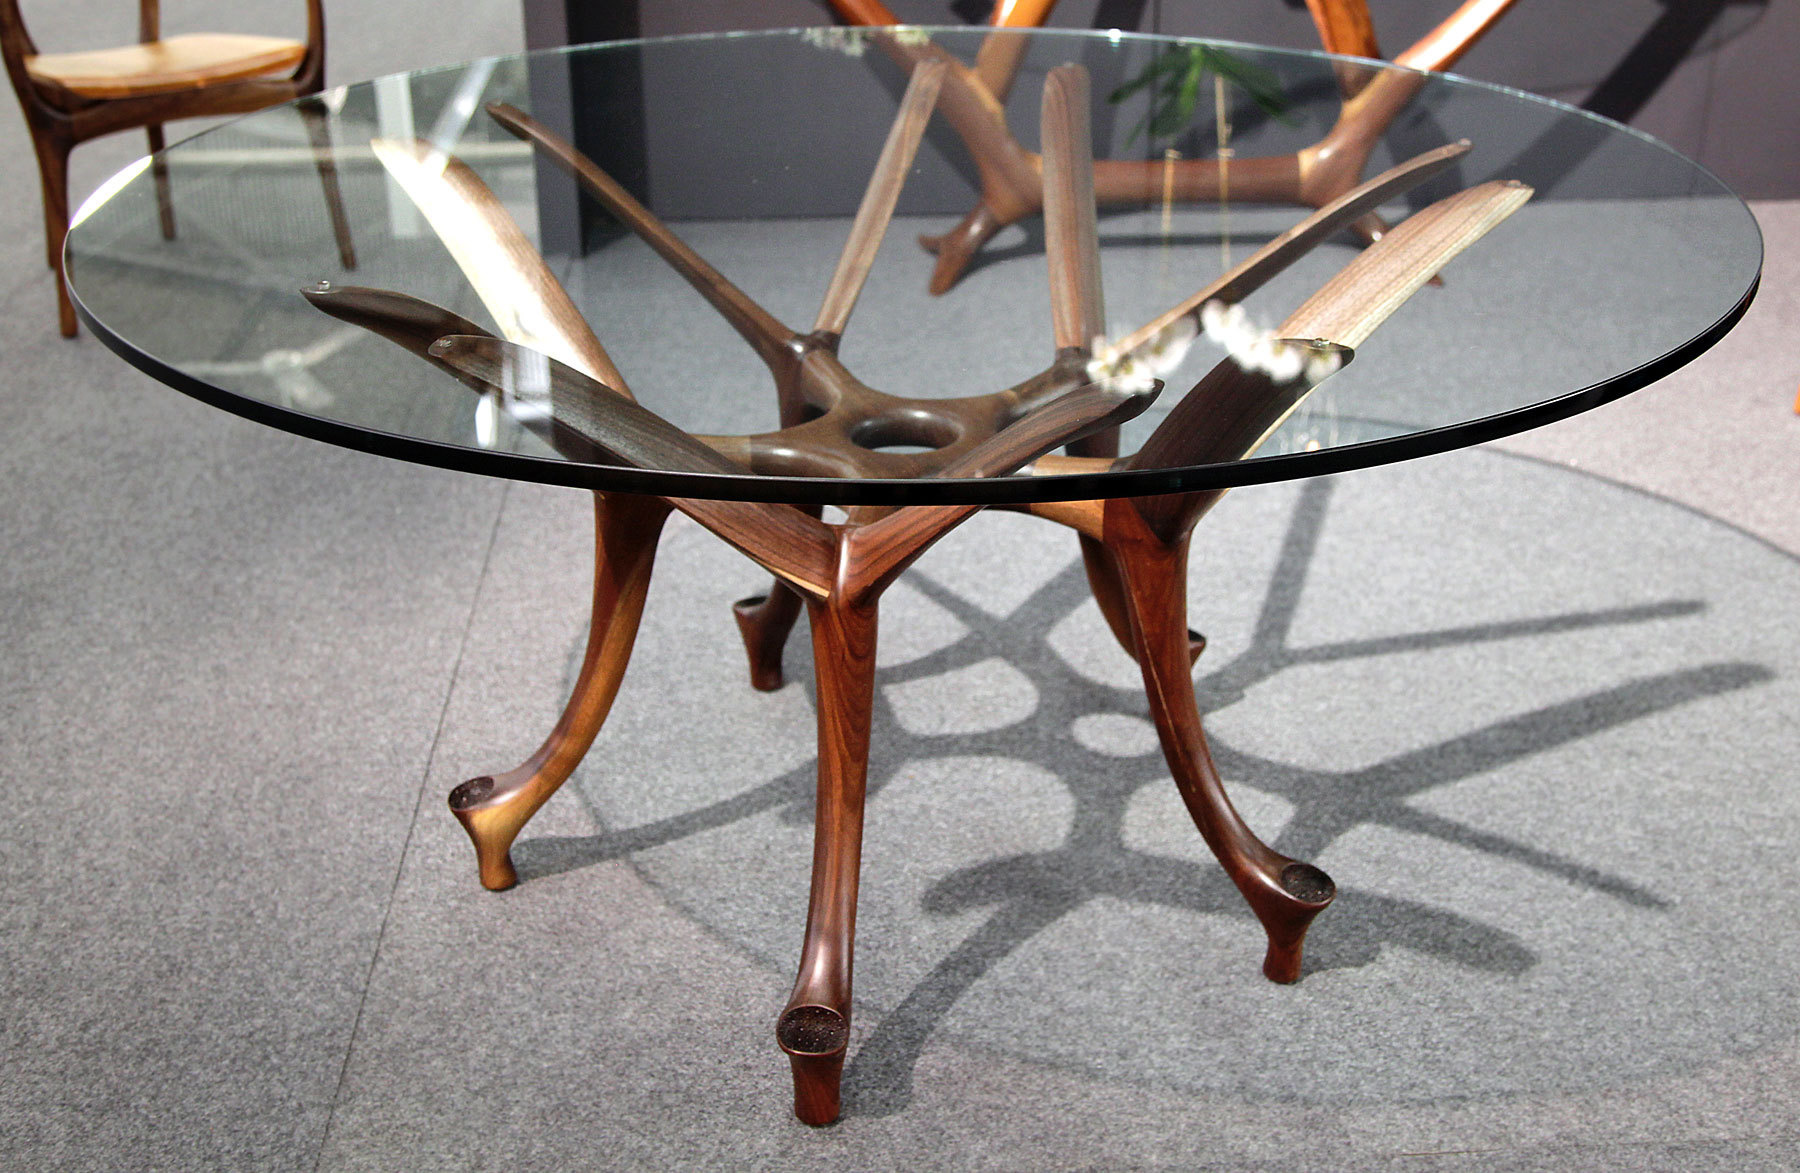 Malabar table Handcrafted Contemporary Furniture Built to Last